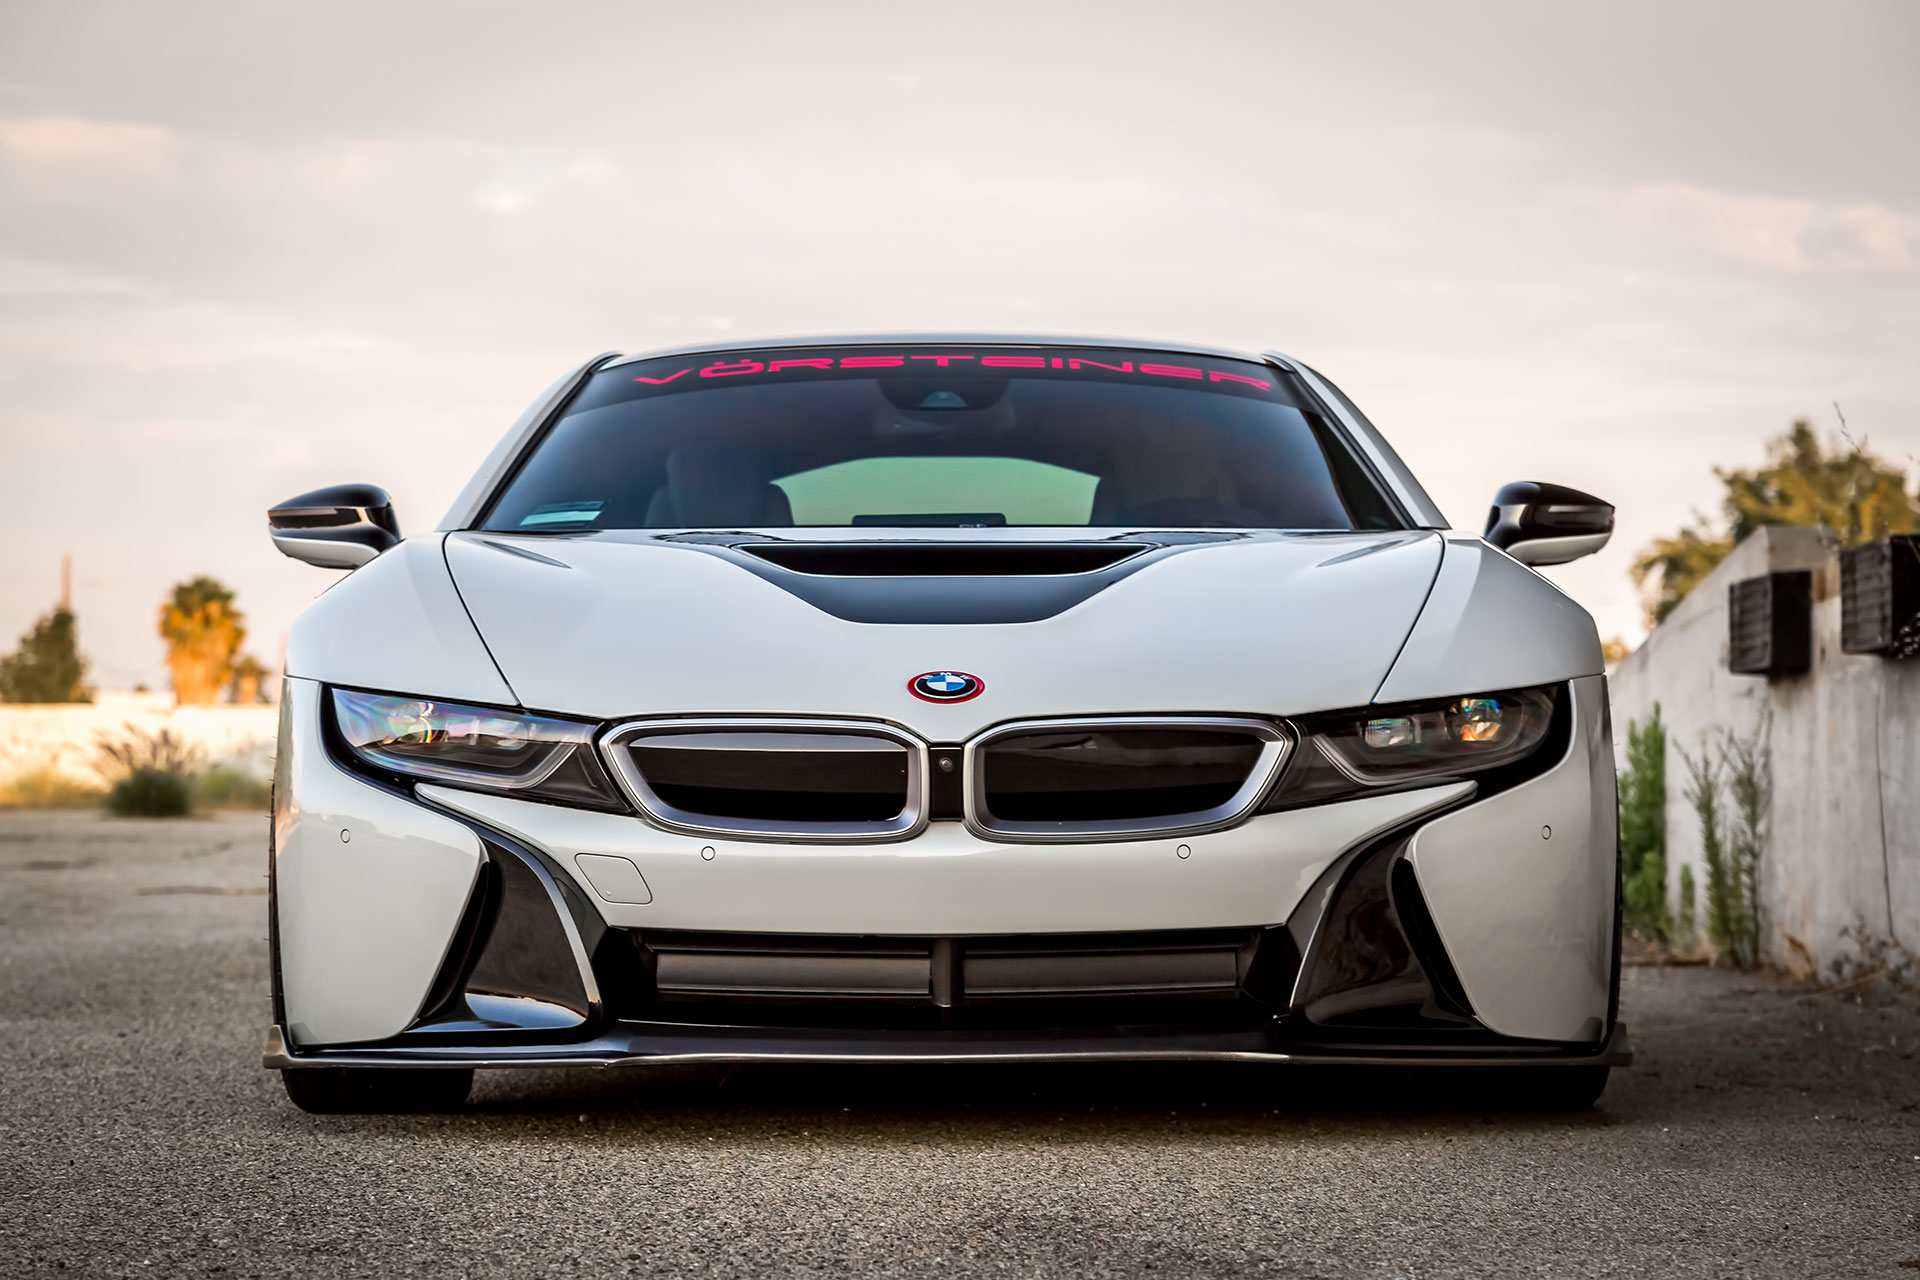 2016 BMW I8 Vorsteiner, HD Cars, 4k Wallpapers, Images ...